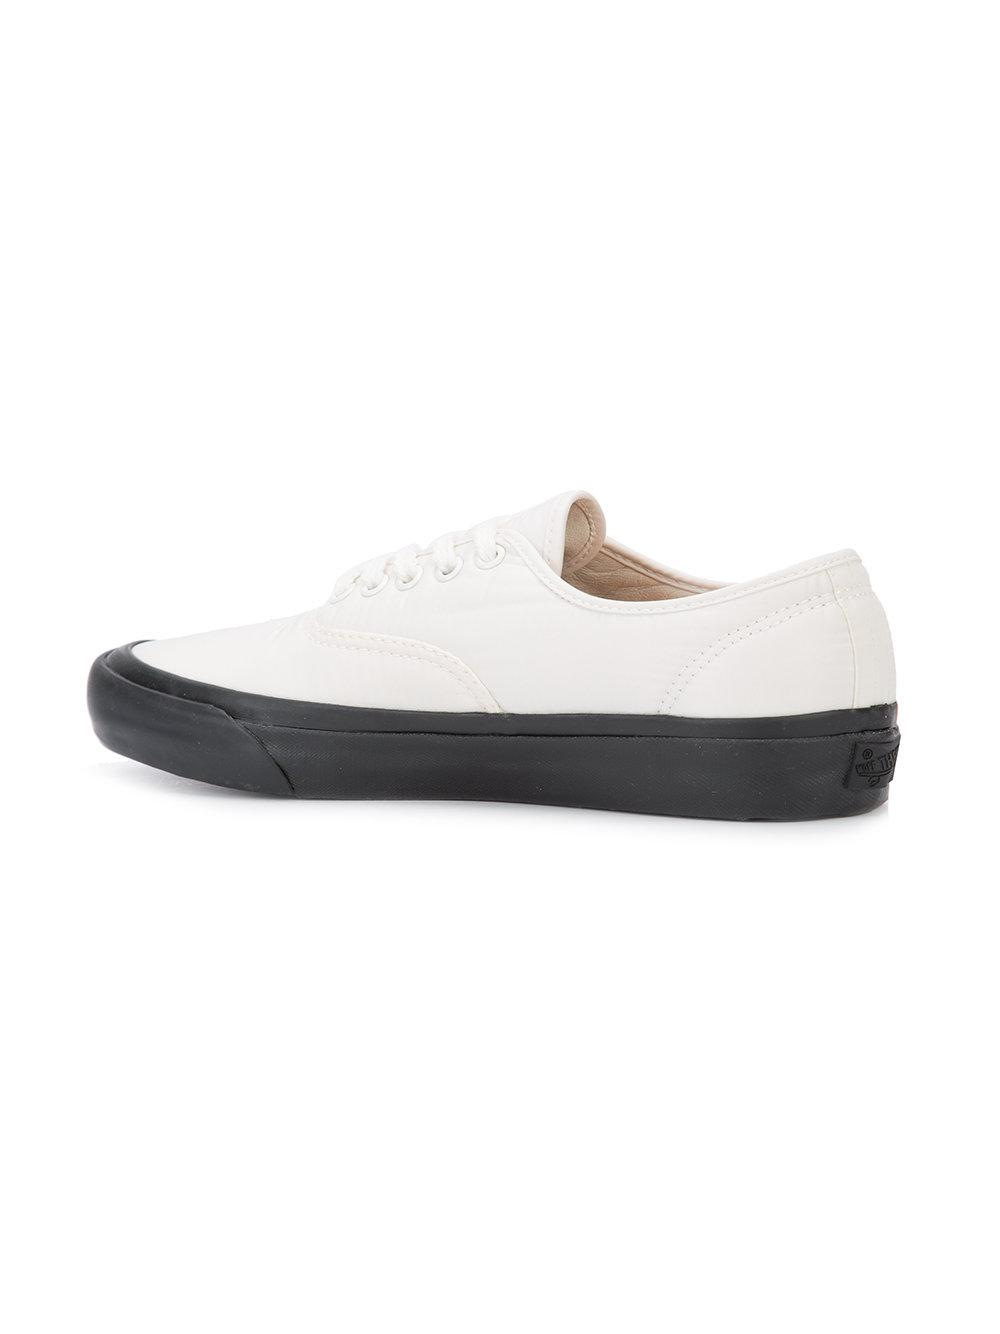 90414ced Vans Vault X Our Legacy Authentic Pro Lx Sneakers in White for Men ...